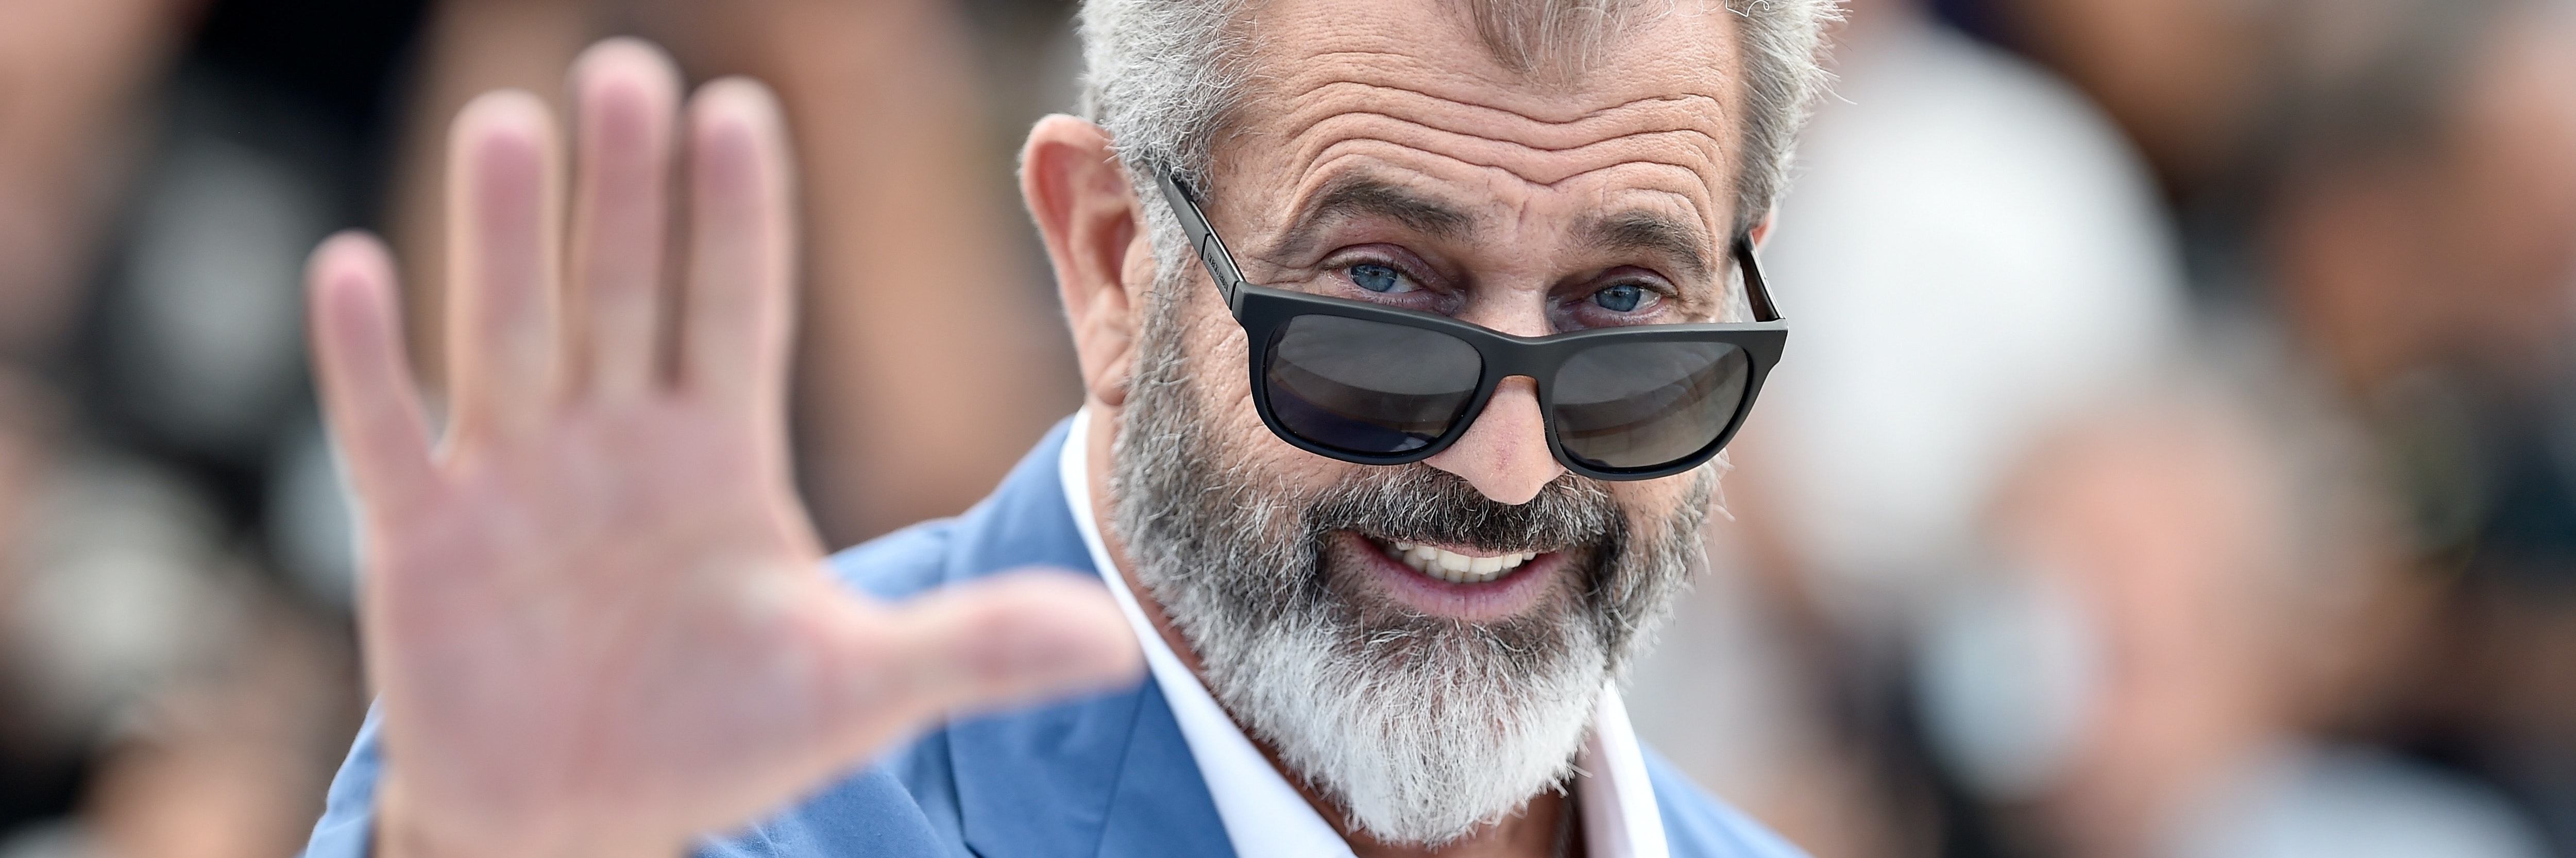 CANNES, FRANCE - MAY 21: Mel Gibson attends the 'Blood Father' photocall during the 69th annual Cannes Film Festival at Palais des Festivals on May 21, 2016 in Cannes, France.  (Photo by Pascal Le Segretain/Getty Images)